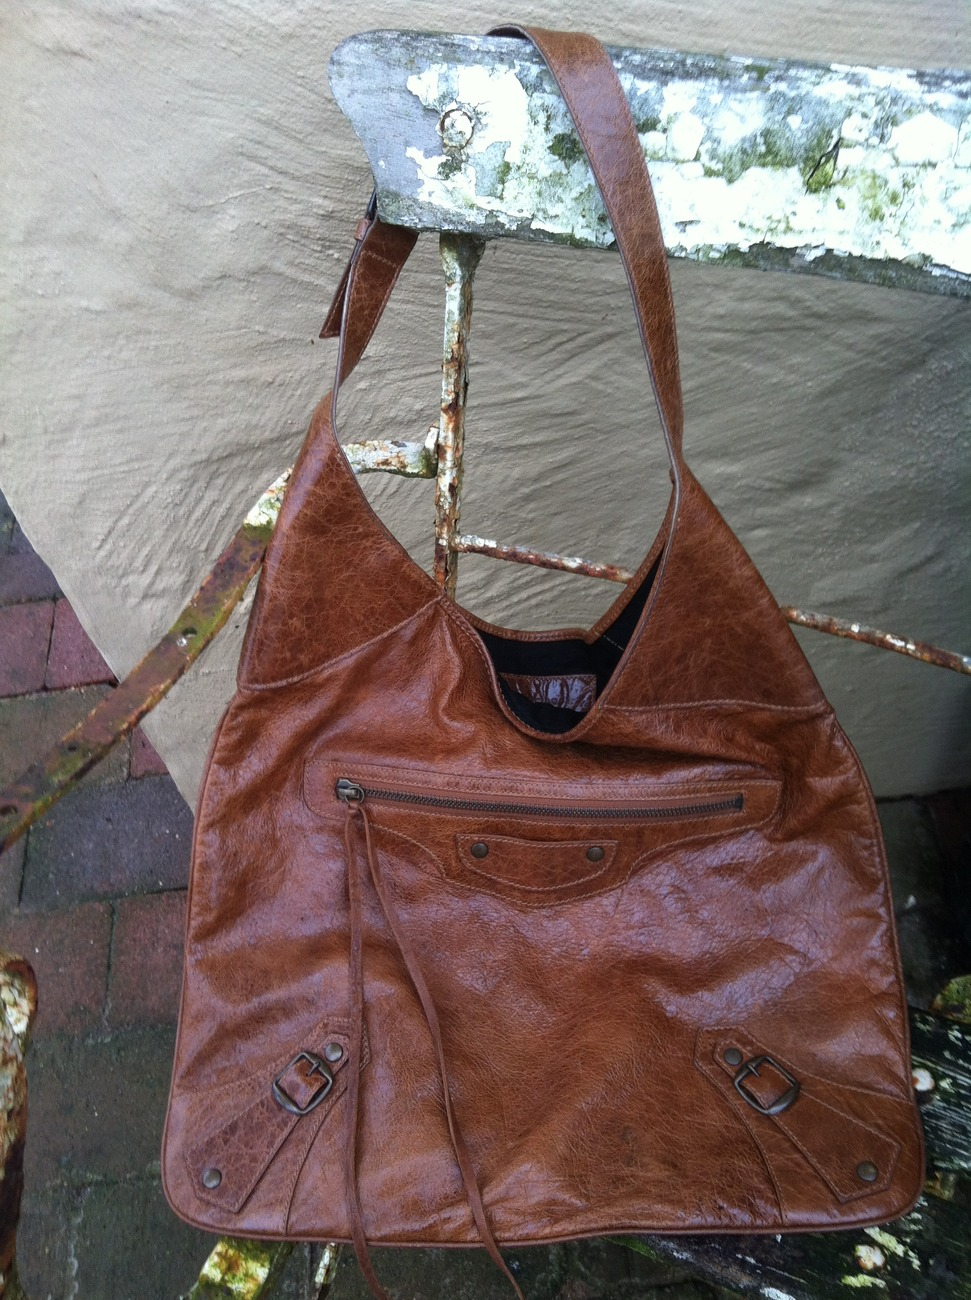 Primary image for Balenciaga mint FB Hobo in Caramel - The Ultimate Treat.